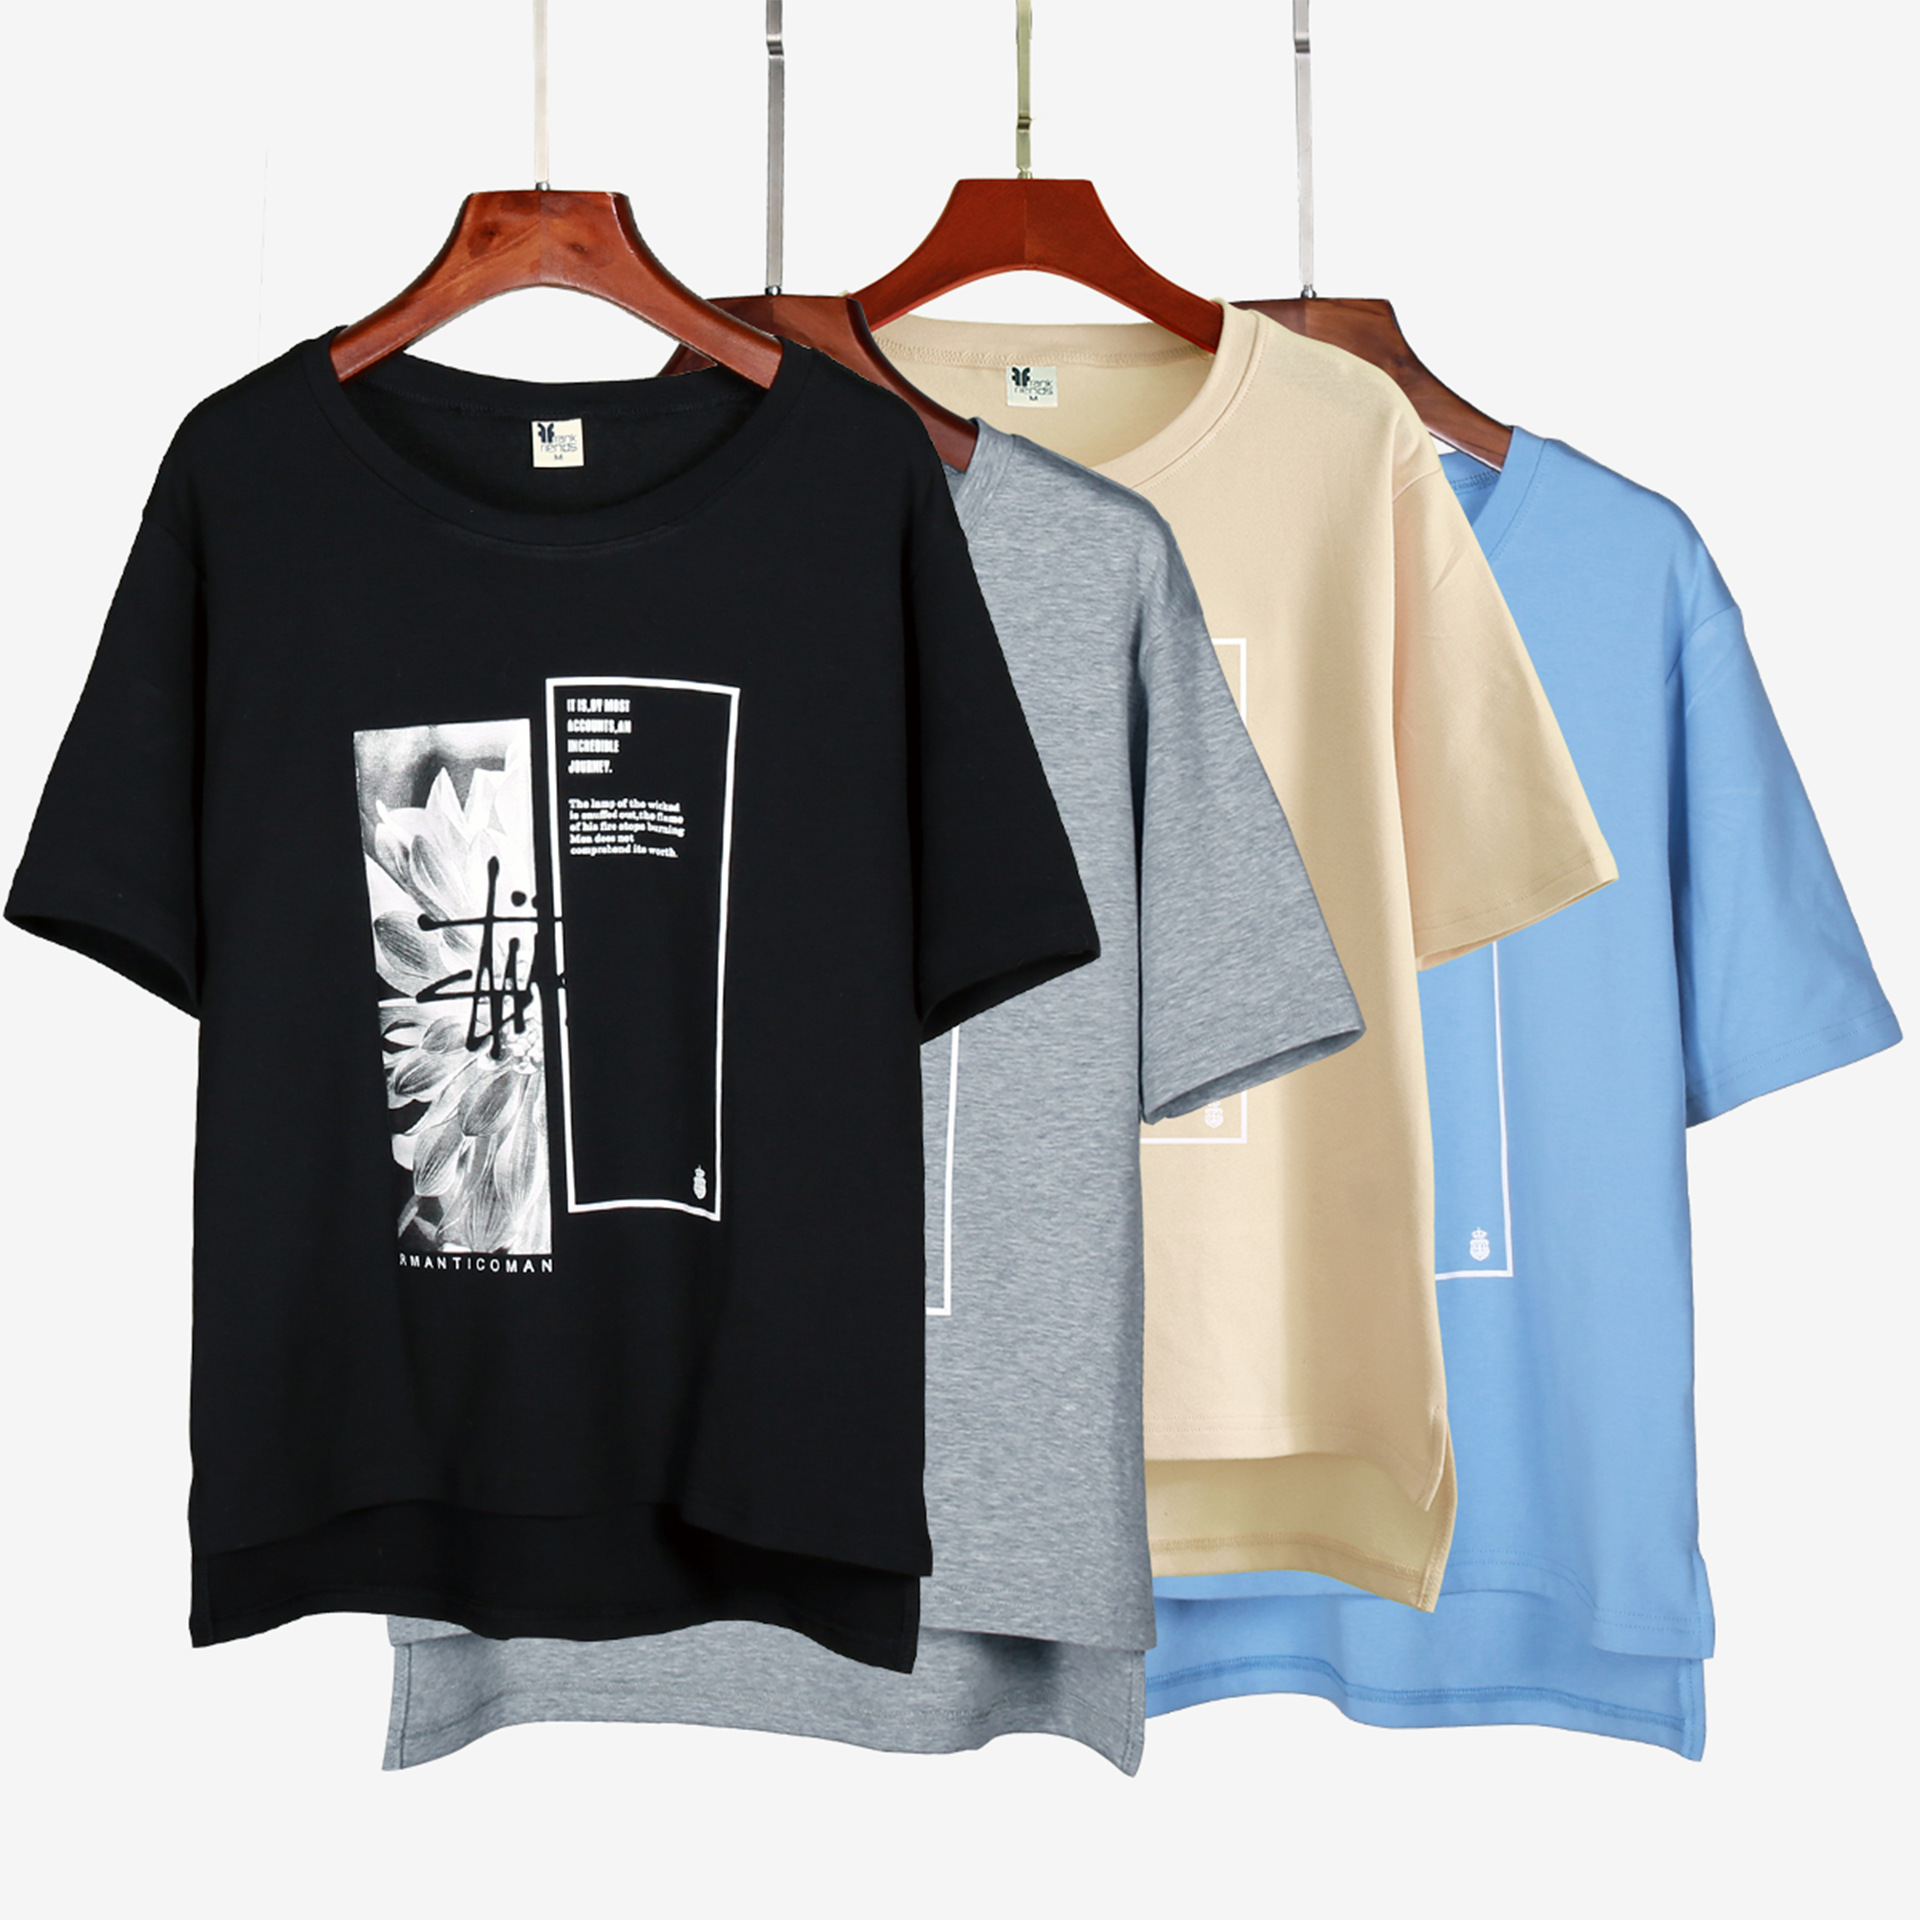 89e68cb920ad Achiewell Summer Casual Women T shirt Round Neck Printed Short Front Long  Back Black White Grey Khaki Pink Blue Cotton Tee Tops-in T-Shirts from  Women s ...